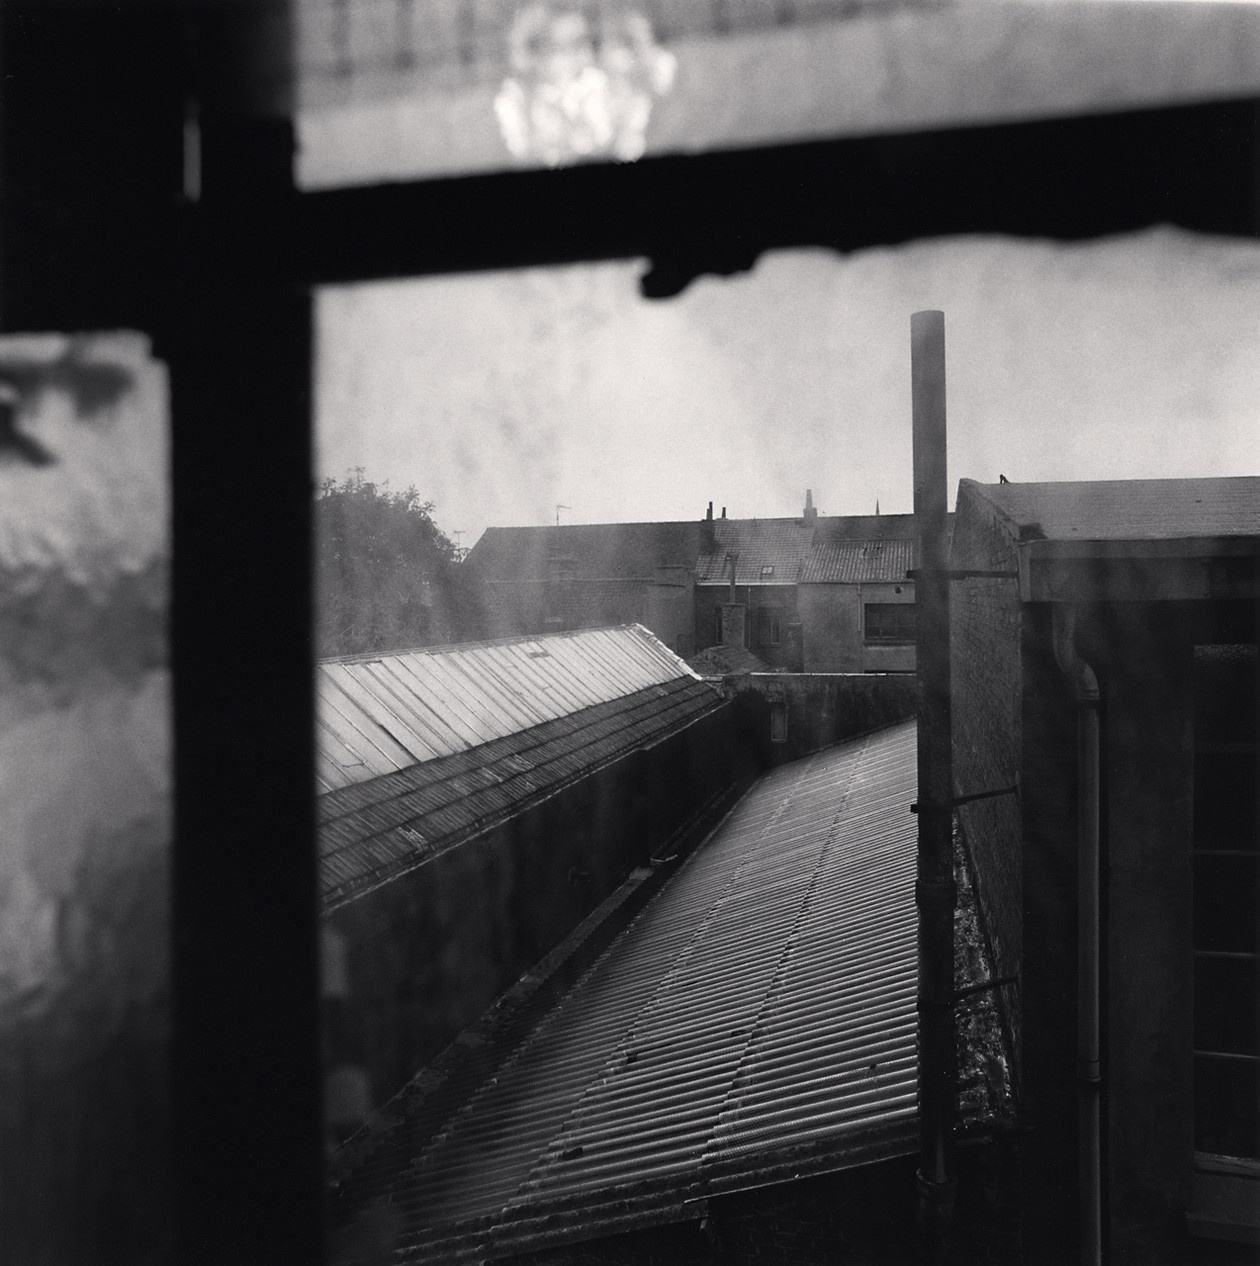 Lace Factories, Study 6, Calais (1993) by Michael Kenna